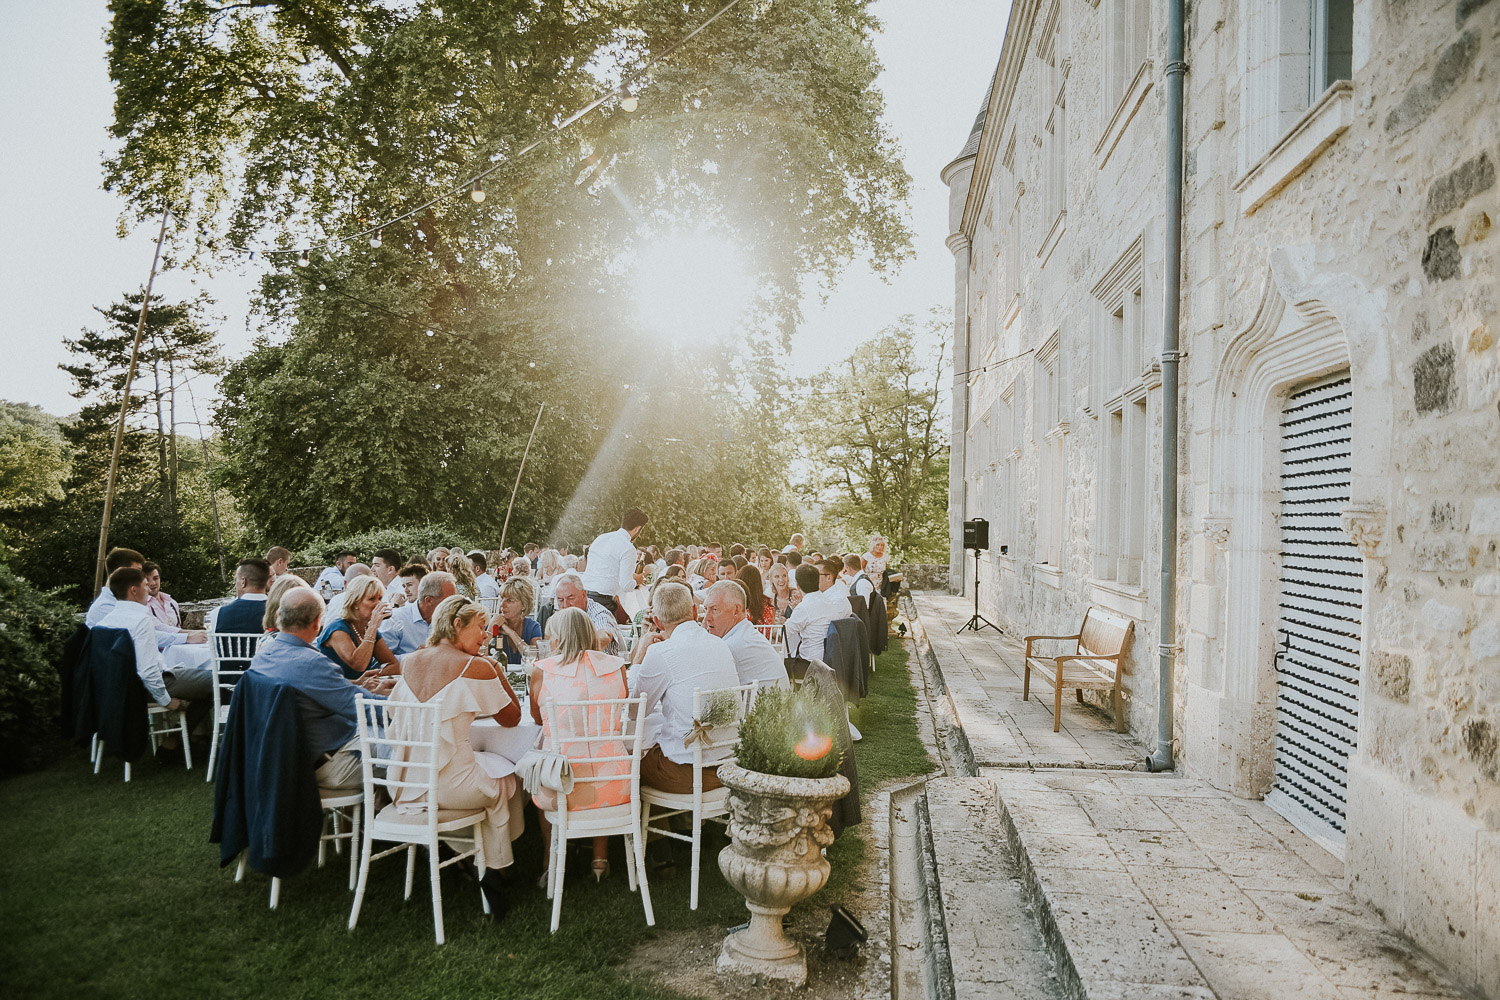 chateau_de_lisse_gers_gascony_south_west_france_family_wedding_katy_webb_photography_UK88